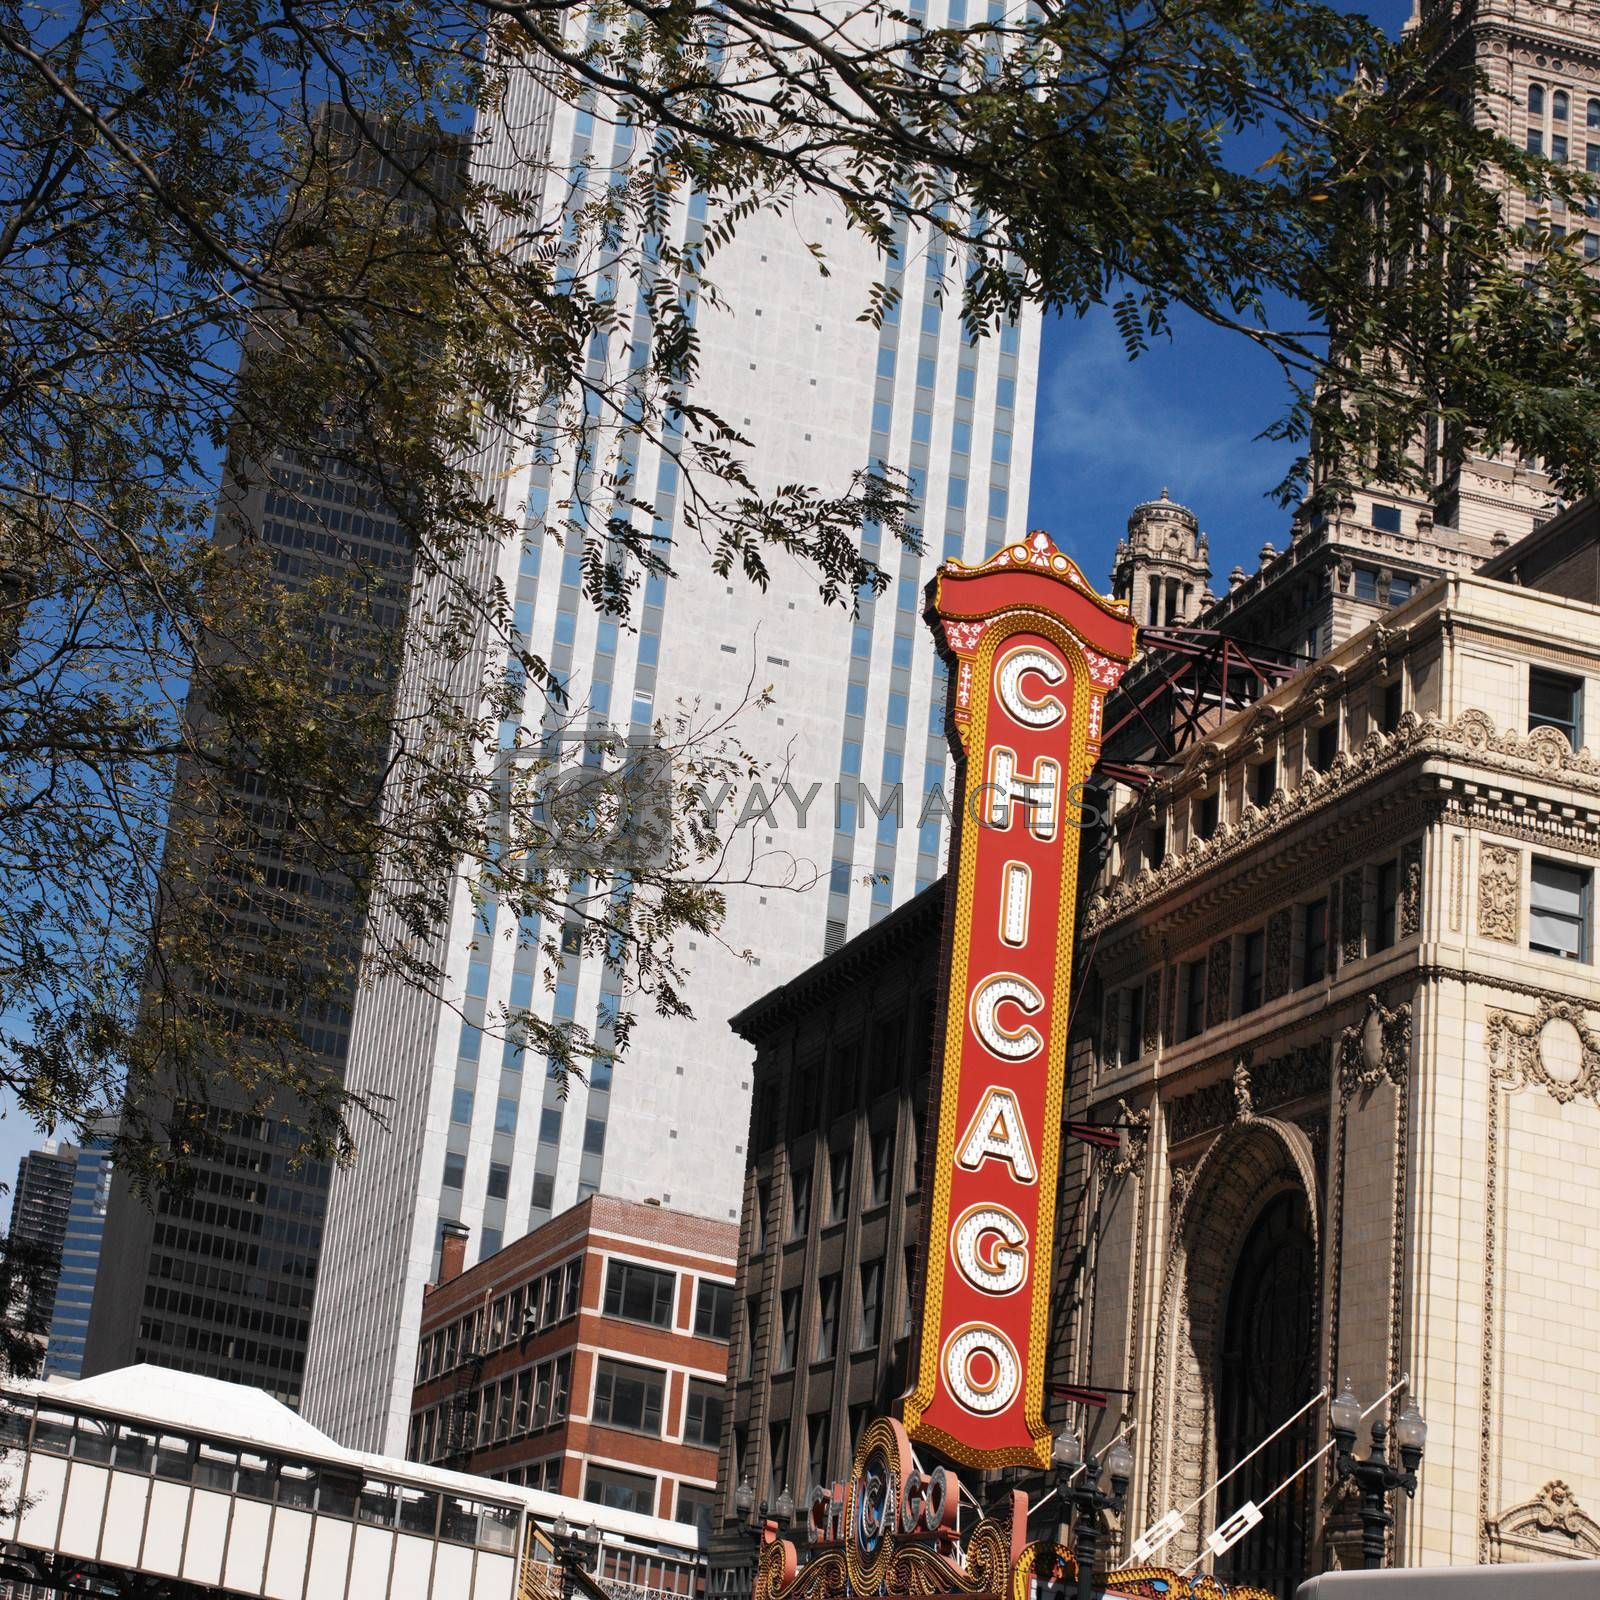 Theater sign in downtown Chicago in the state of Illinois in the United States of America.